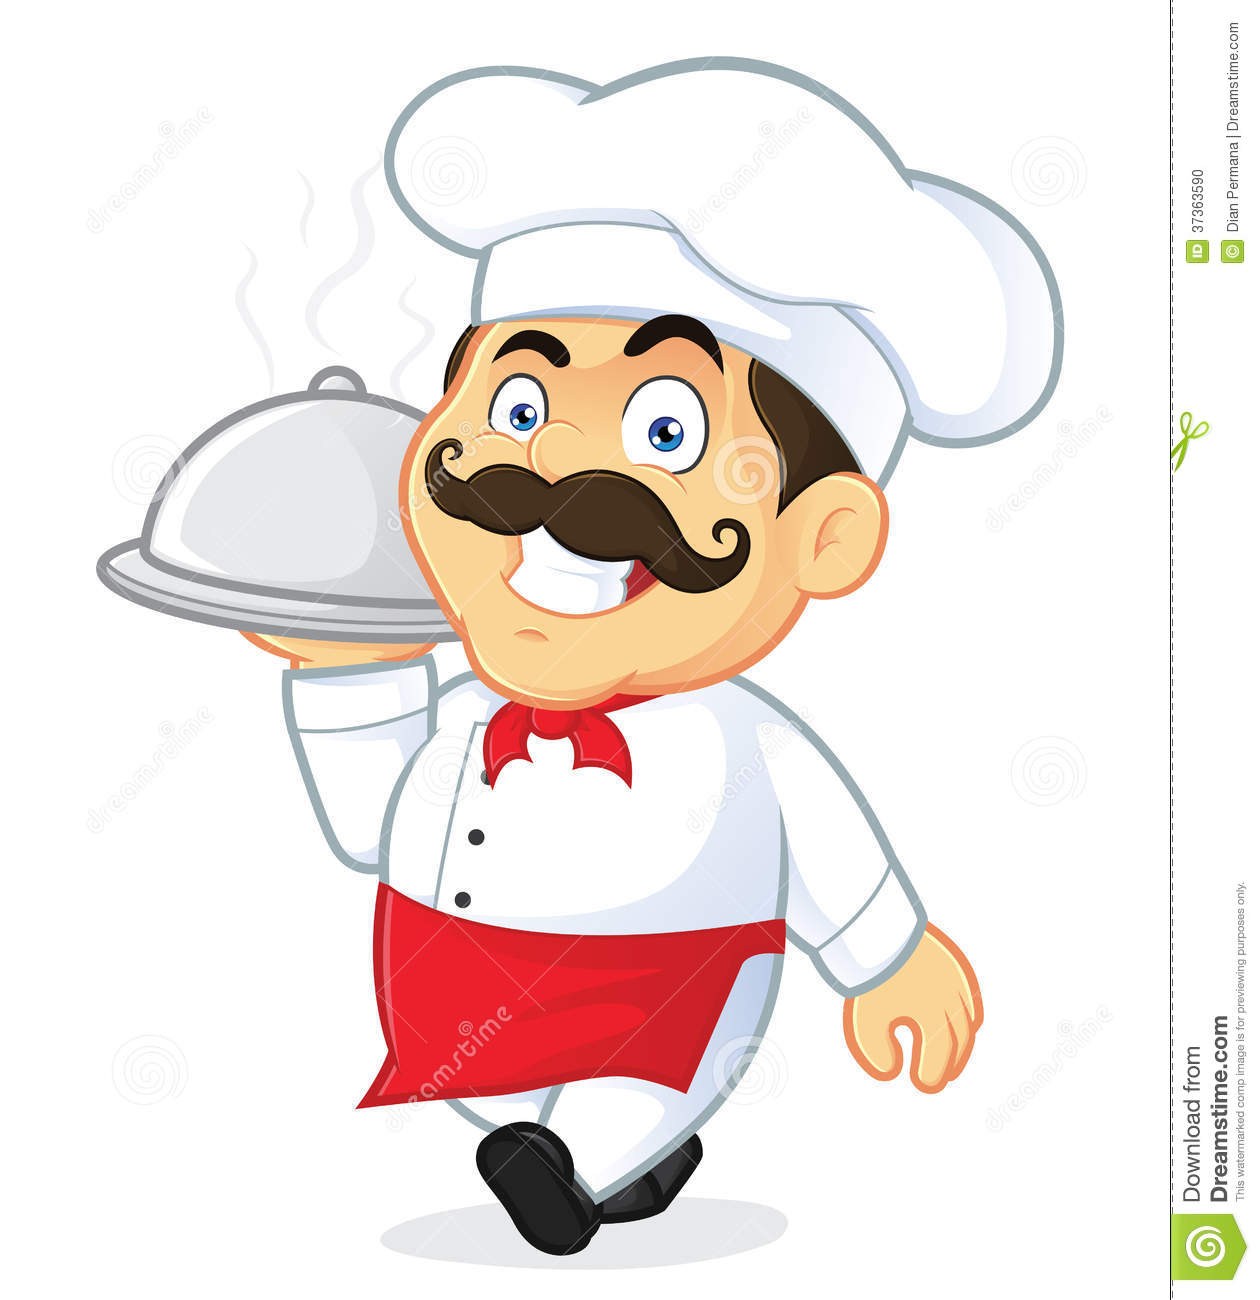 Catering services clipart 12 » Clipart Station.